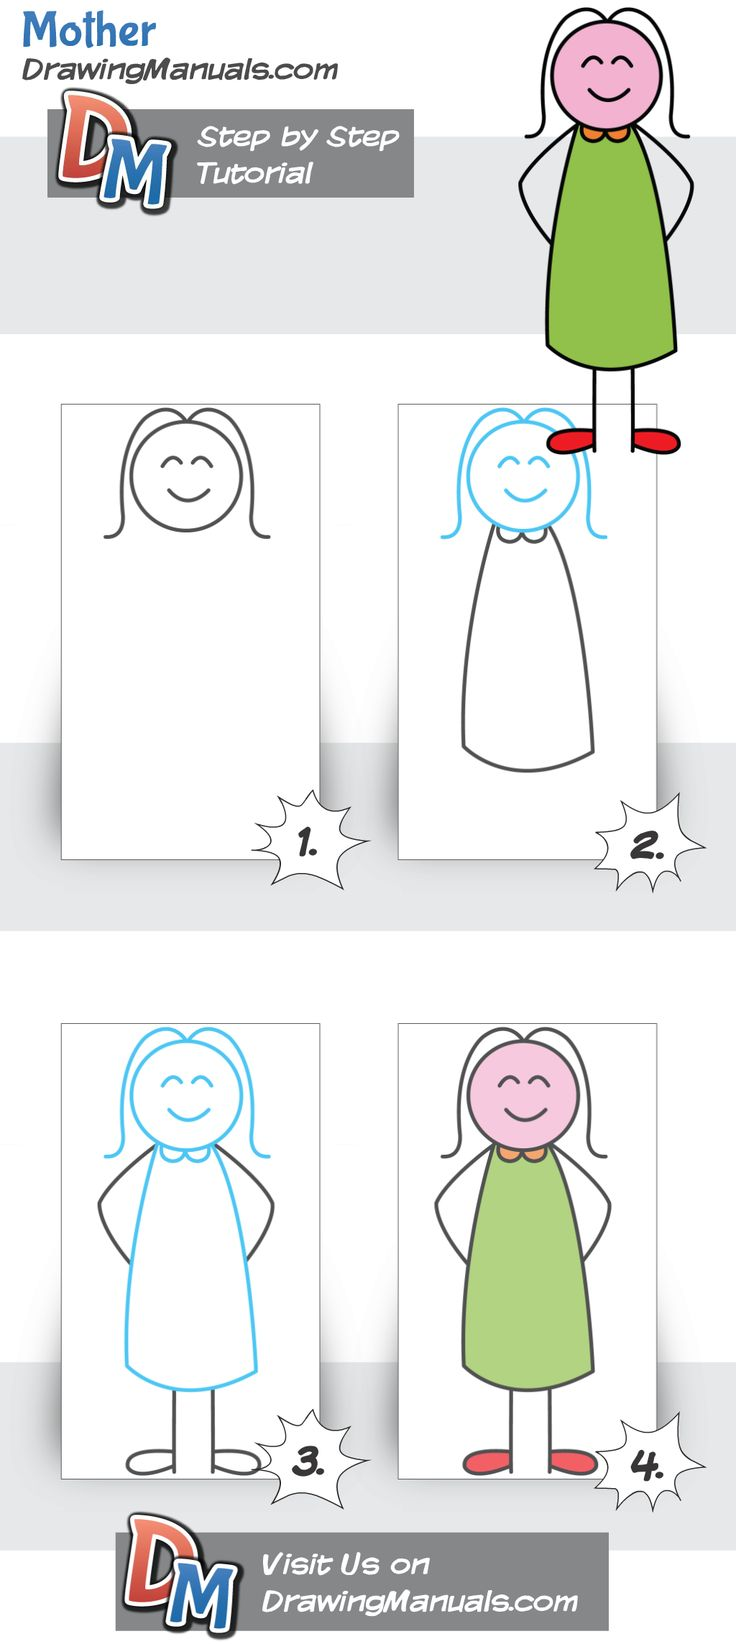 Drawing+idea+for+Toddlers-+Mother